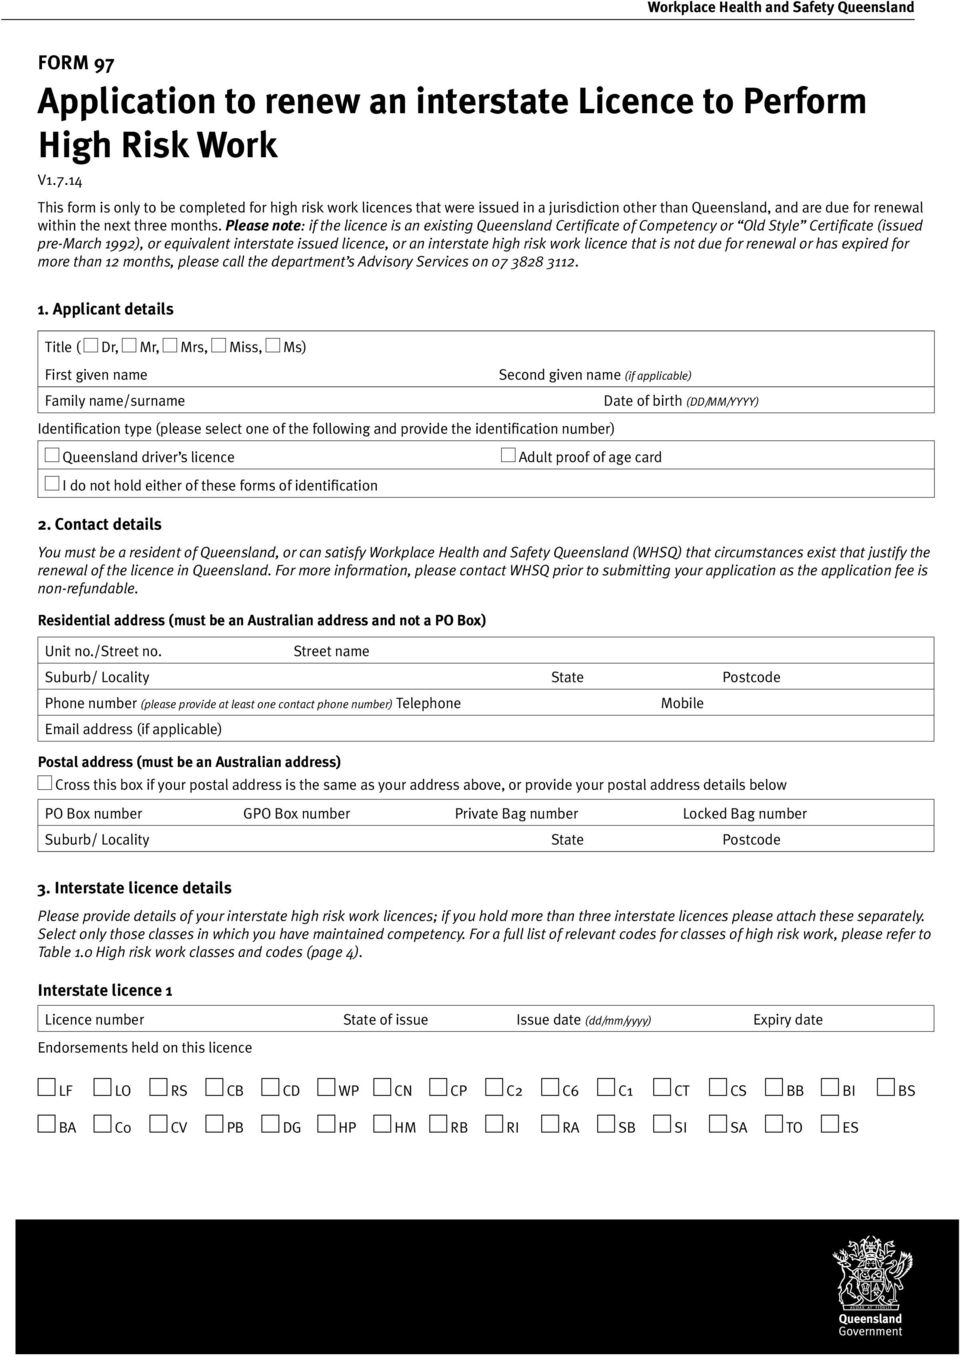 14 This form is only to be completed for high risk work licences that were issued in a jurisdiction other than Queensland, and are due for renewal within the next three months.